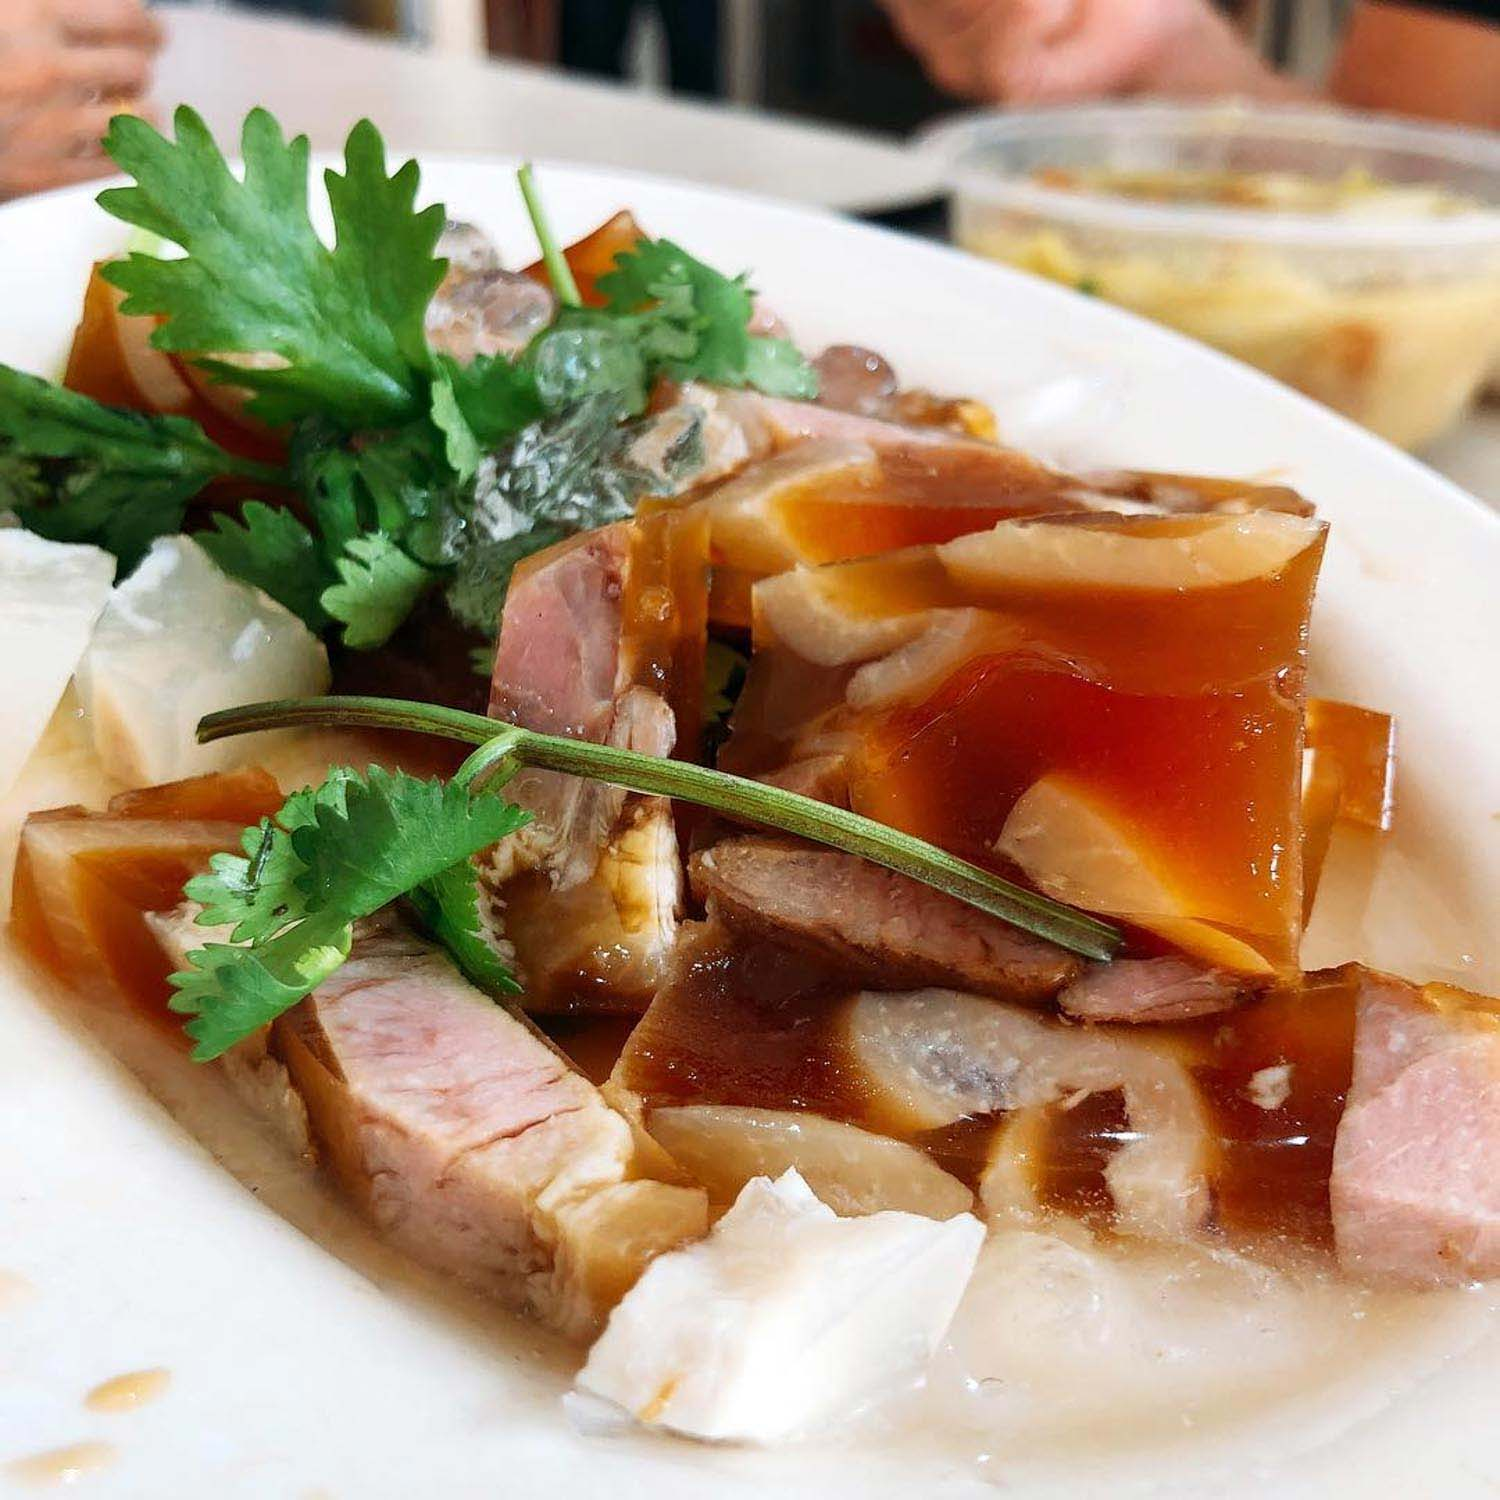 Teochew dishes - Jellied pig trotters